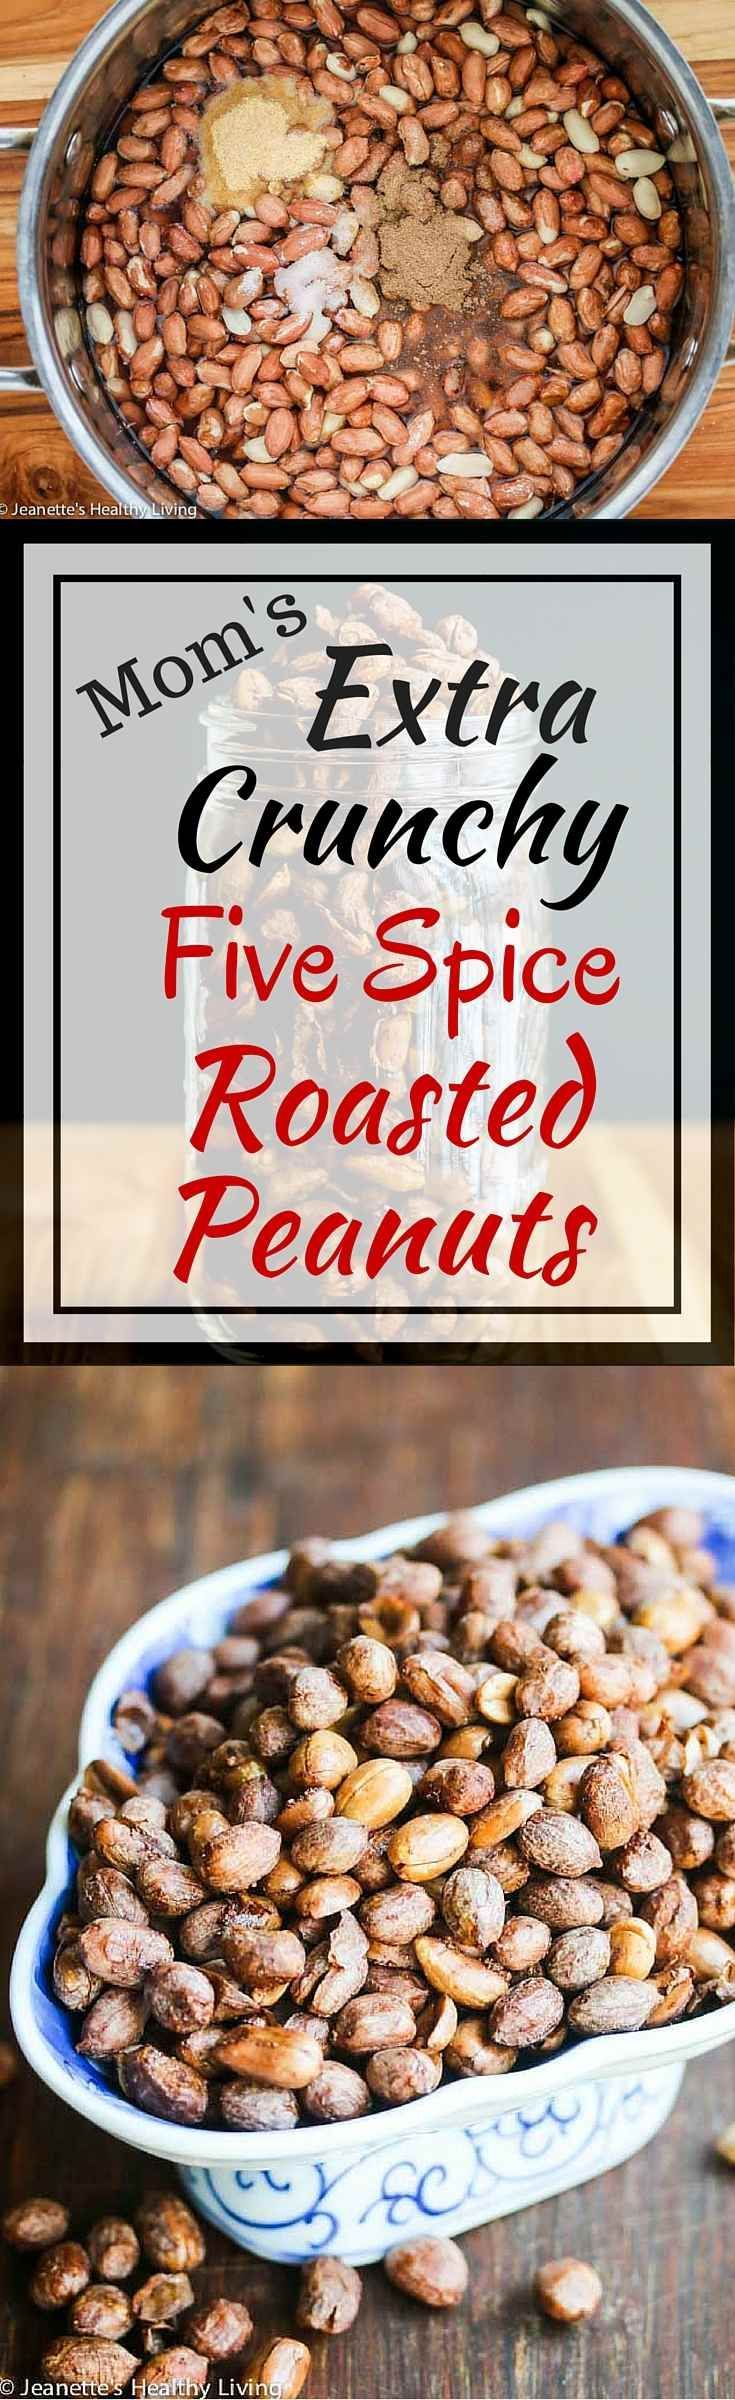 Mom's Extra Crunchy Five Spice Roasted Peanuts - my mom has perfected this recipe over the years and handed it down to me. The trick is to cook the peanuts first in a five spice scented liquid, then slow roast them.